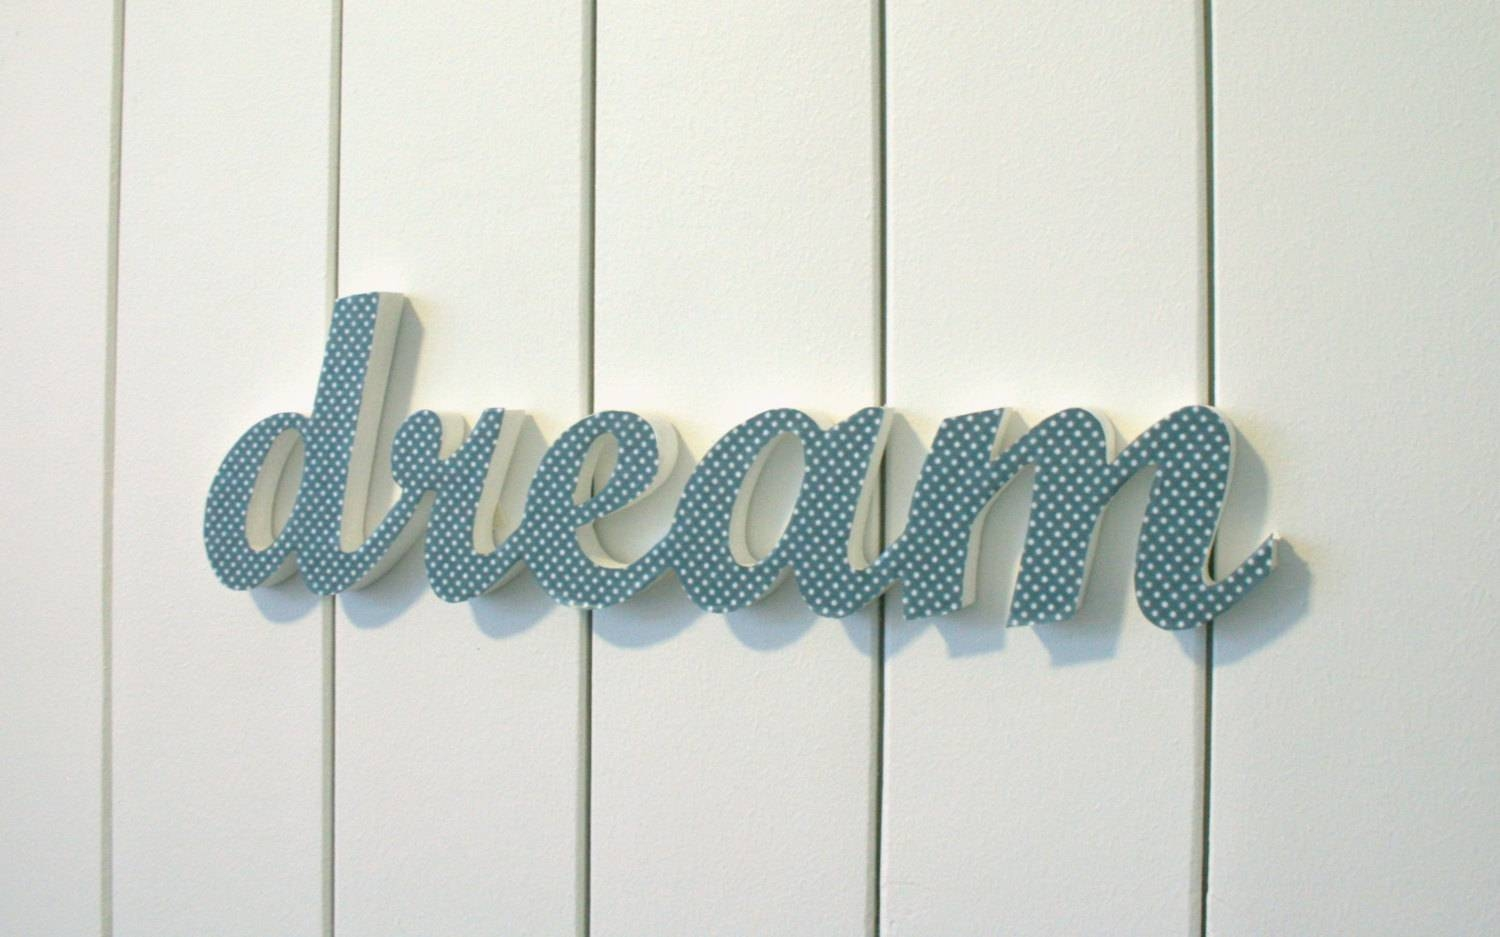 Dream Inspirational Wood Word Wall Art Hanging – Dma Homes | #89887 Intended For Most Recent Wooden Words Wall Art (View 10 of 30)